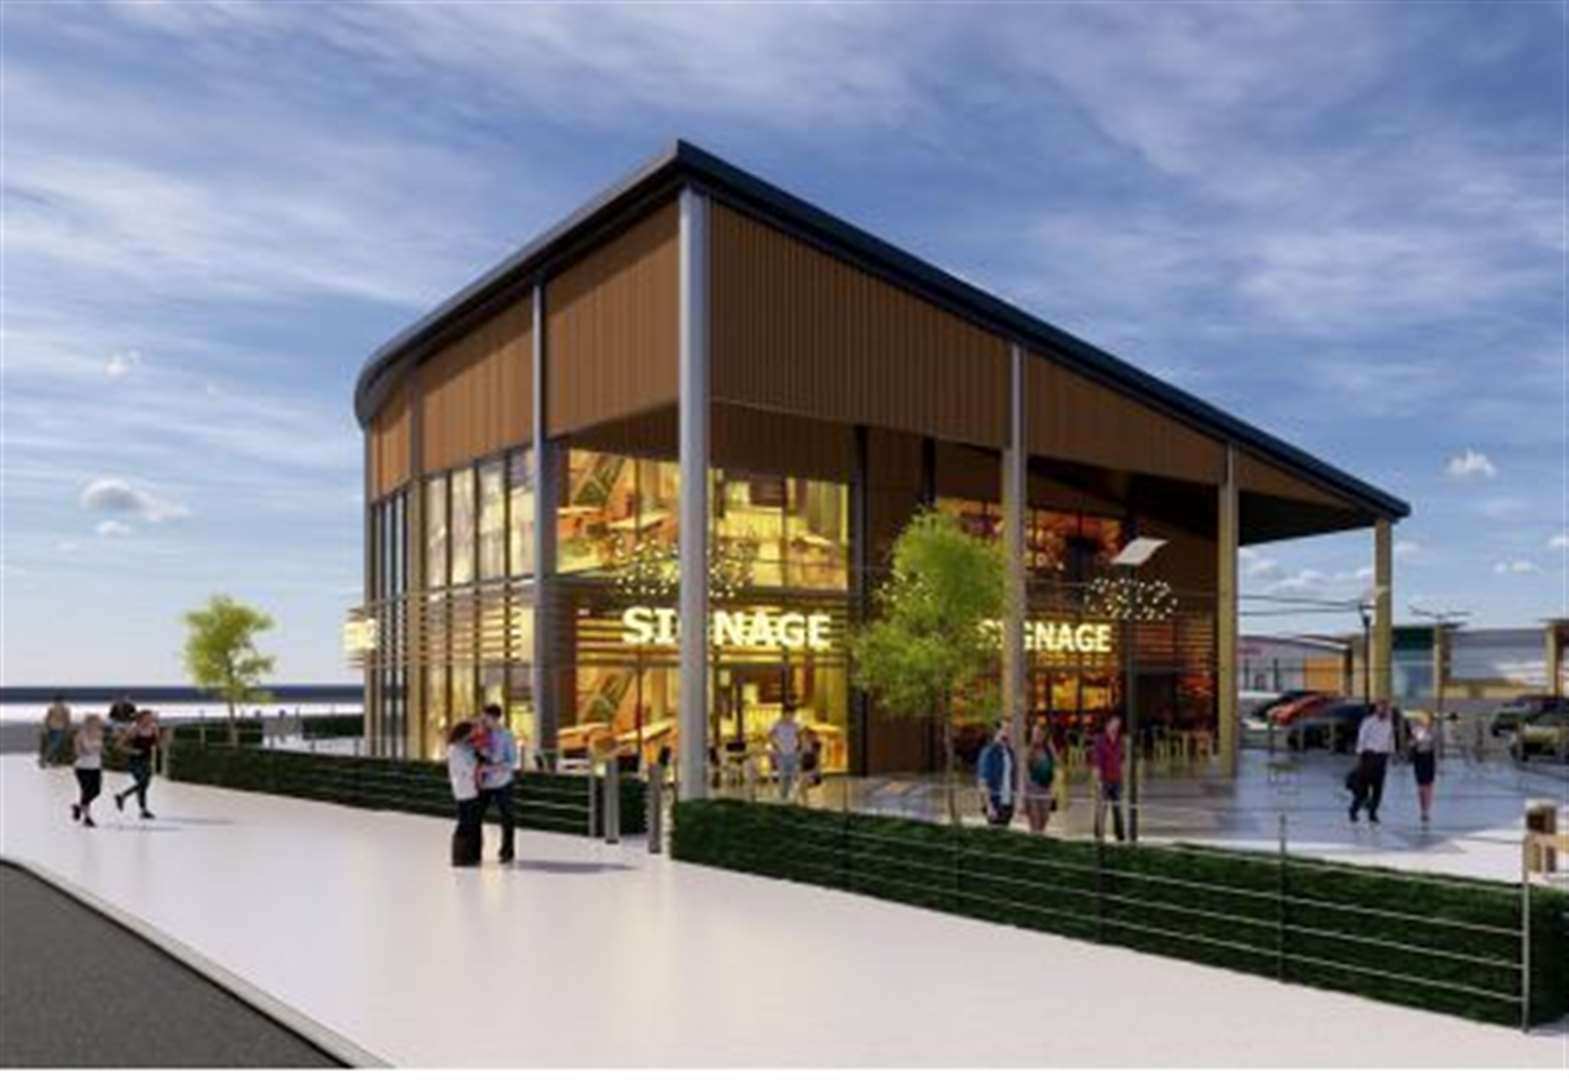 Expansion plans submitted for retail park